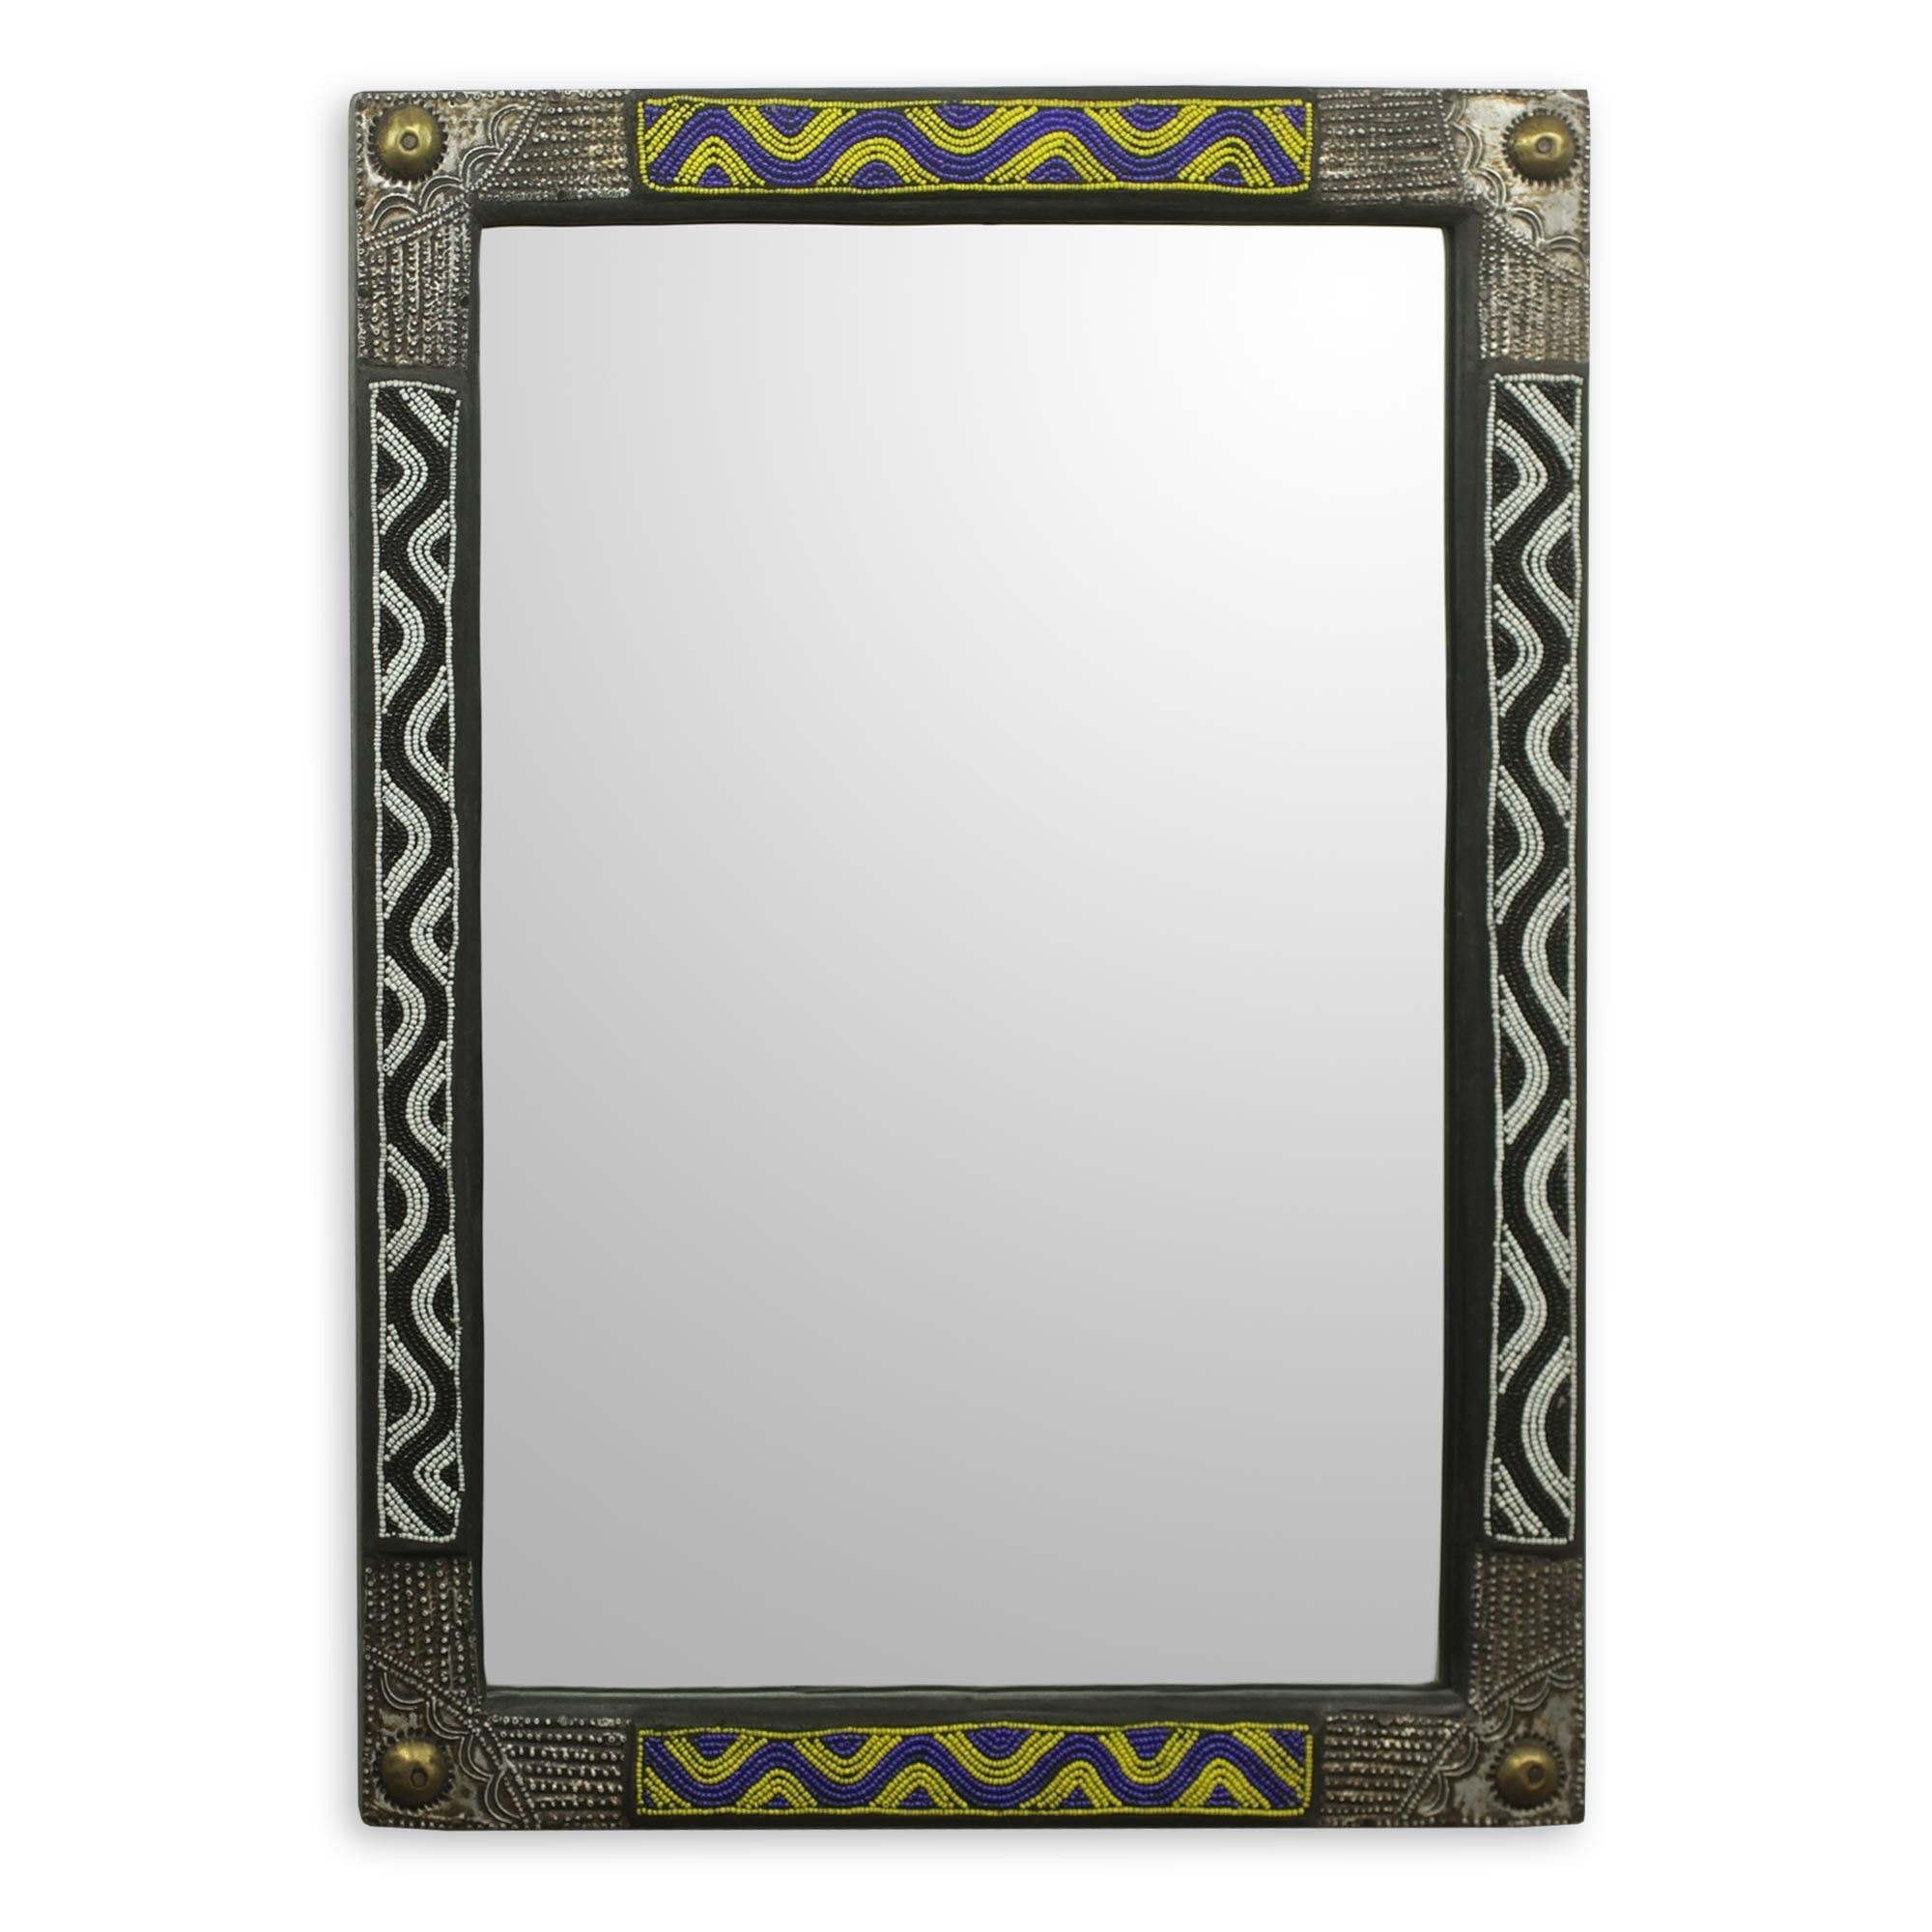 Ahoufe Ii African Beaded Wood Frame Wall Mirror With Metal Accents Within Recent Beaded Accent Wall Mirrors (View 3 of 20)